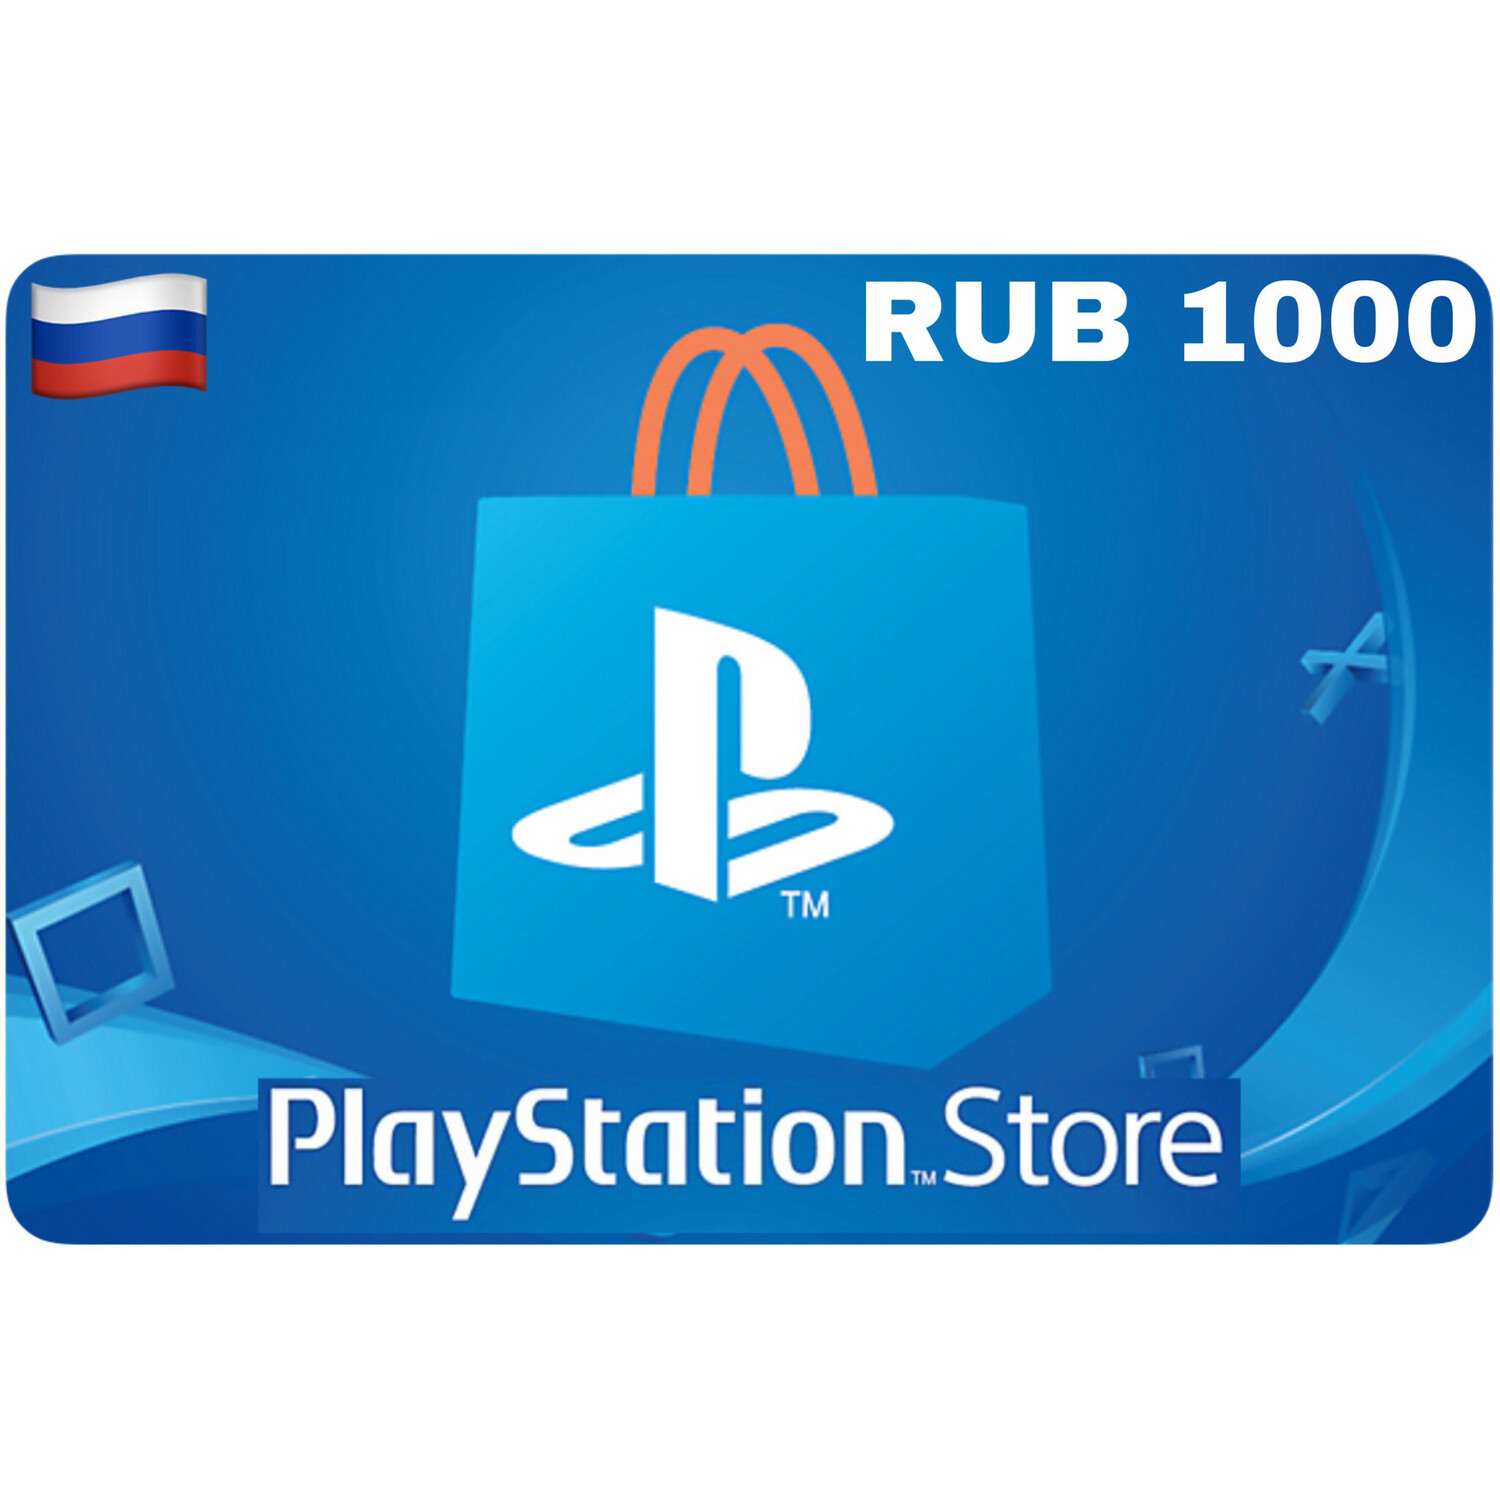 Playstation Store Gift Card Russia RUB 1000